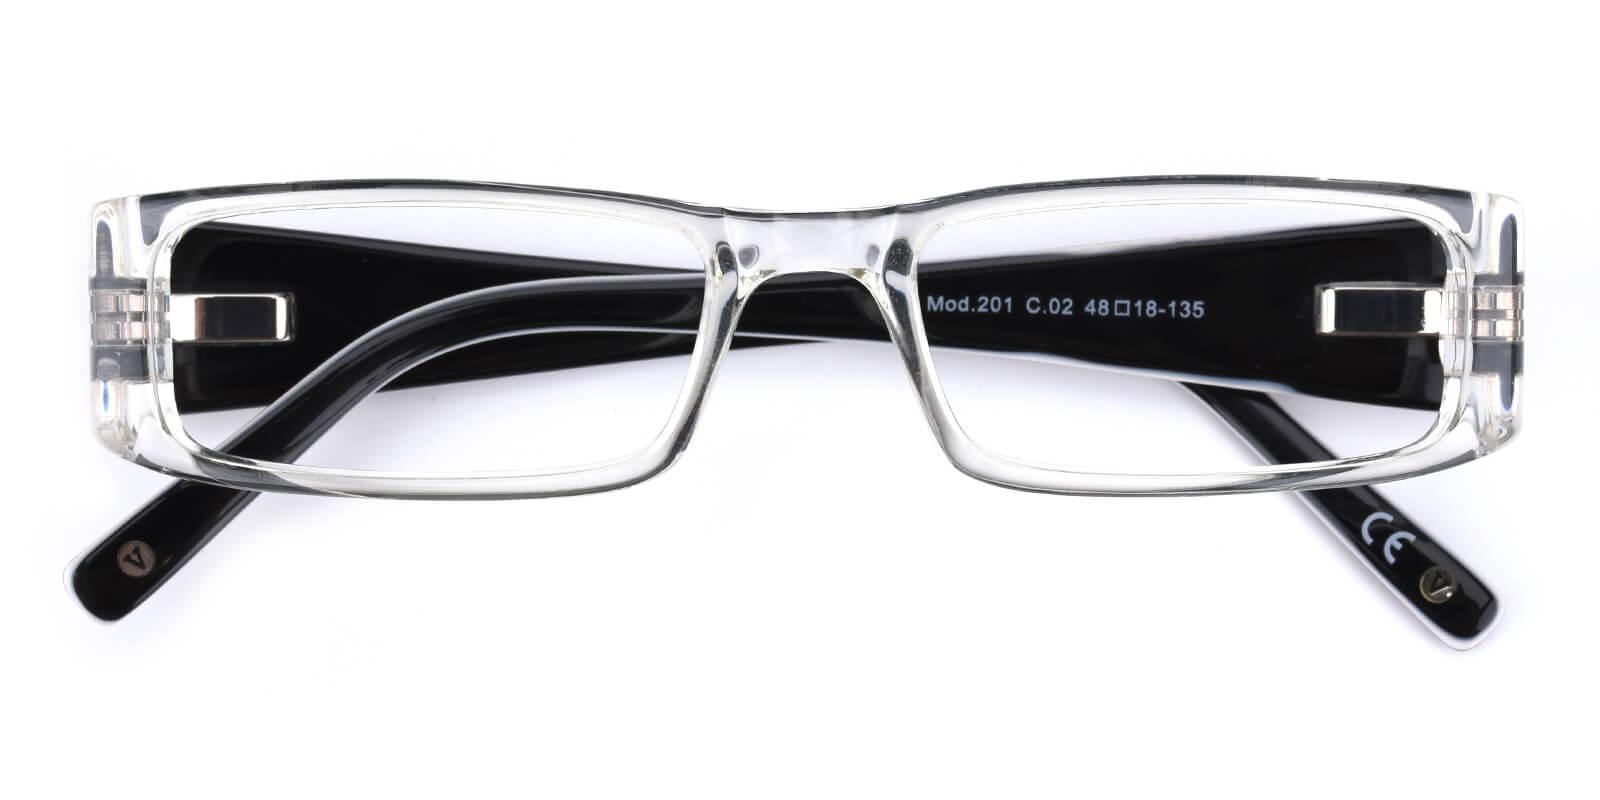 Superior-Translucent-Rectangle-Acetate-Eyeglasses-detail